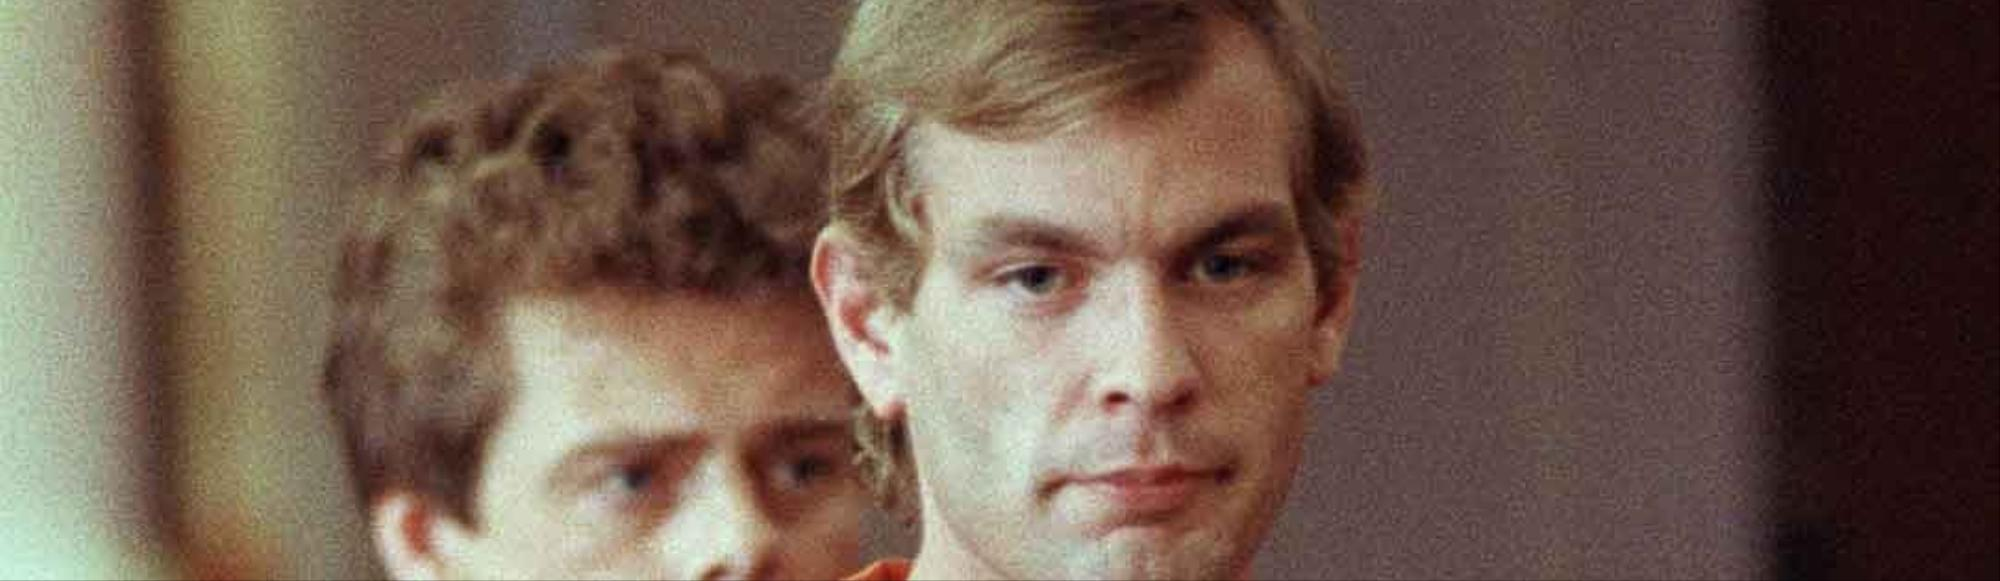 PETA Will NOT Be Turning Dahmer Home Into a Vegan Restaurant